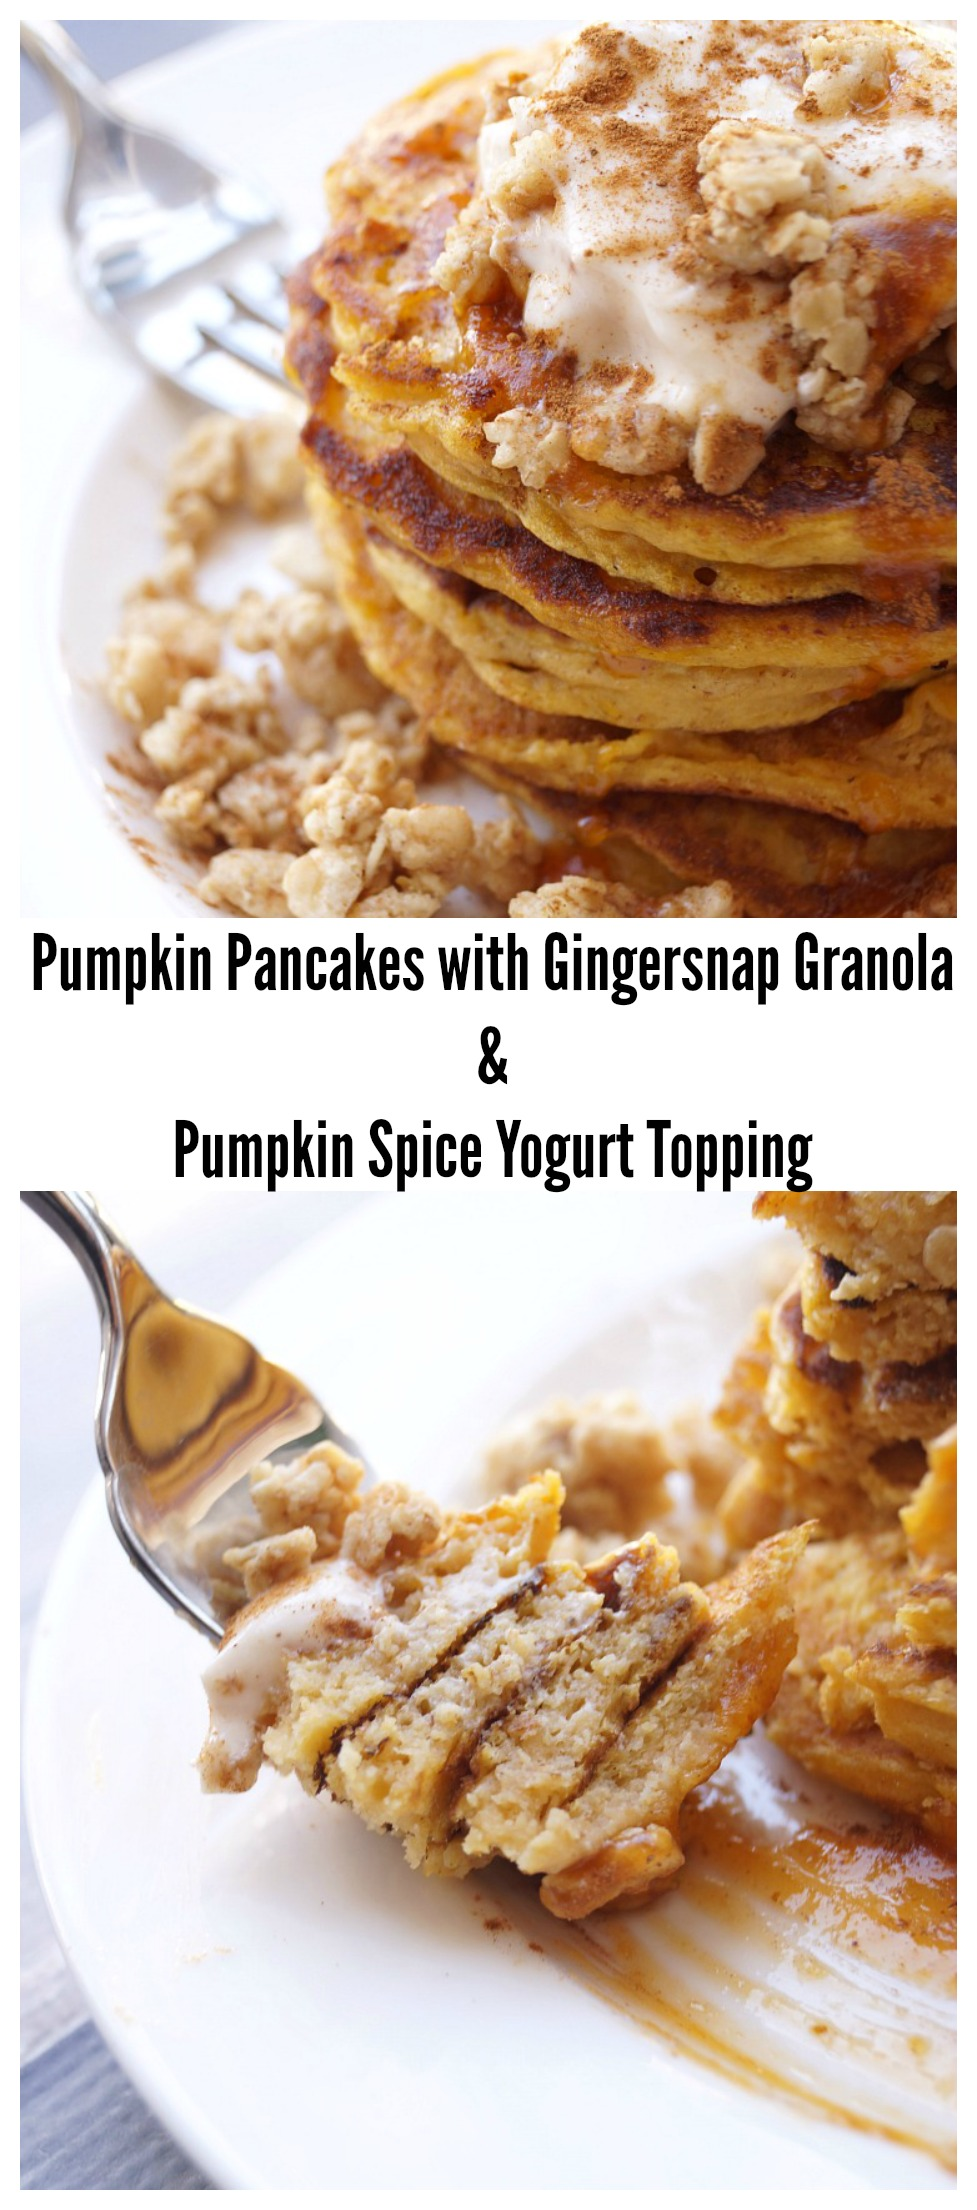 Pumpkin Pancakes with Gingersnap Granola and Pumpkin Spice Yogurt